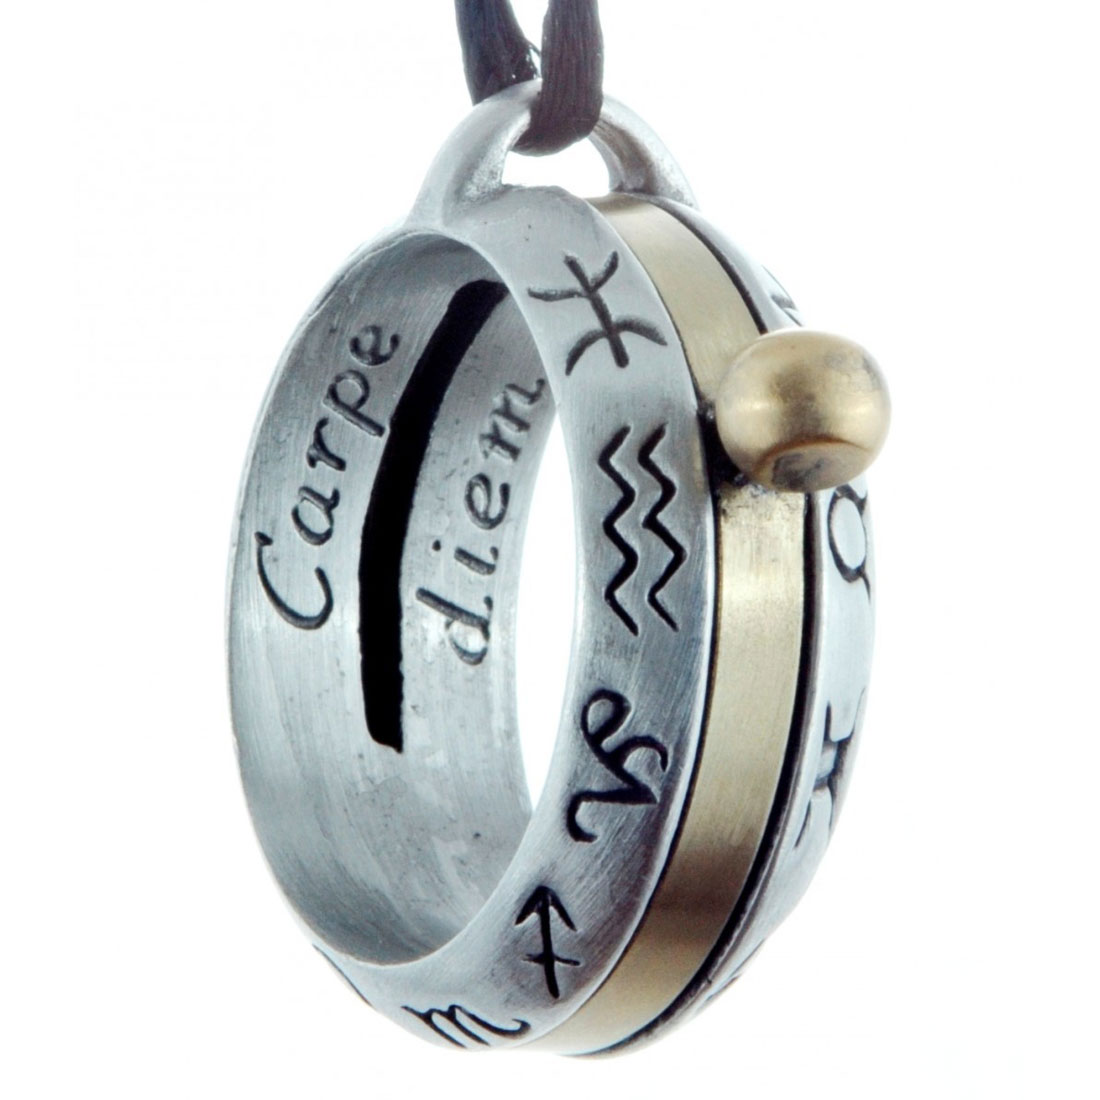 Aquitaine Astrology Sundial Necklace in Pewter